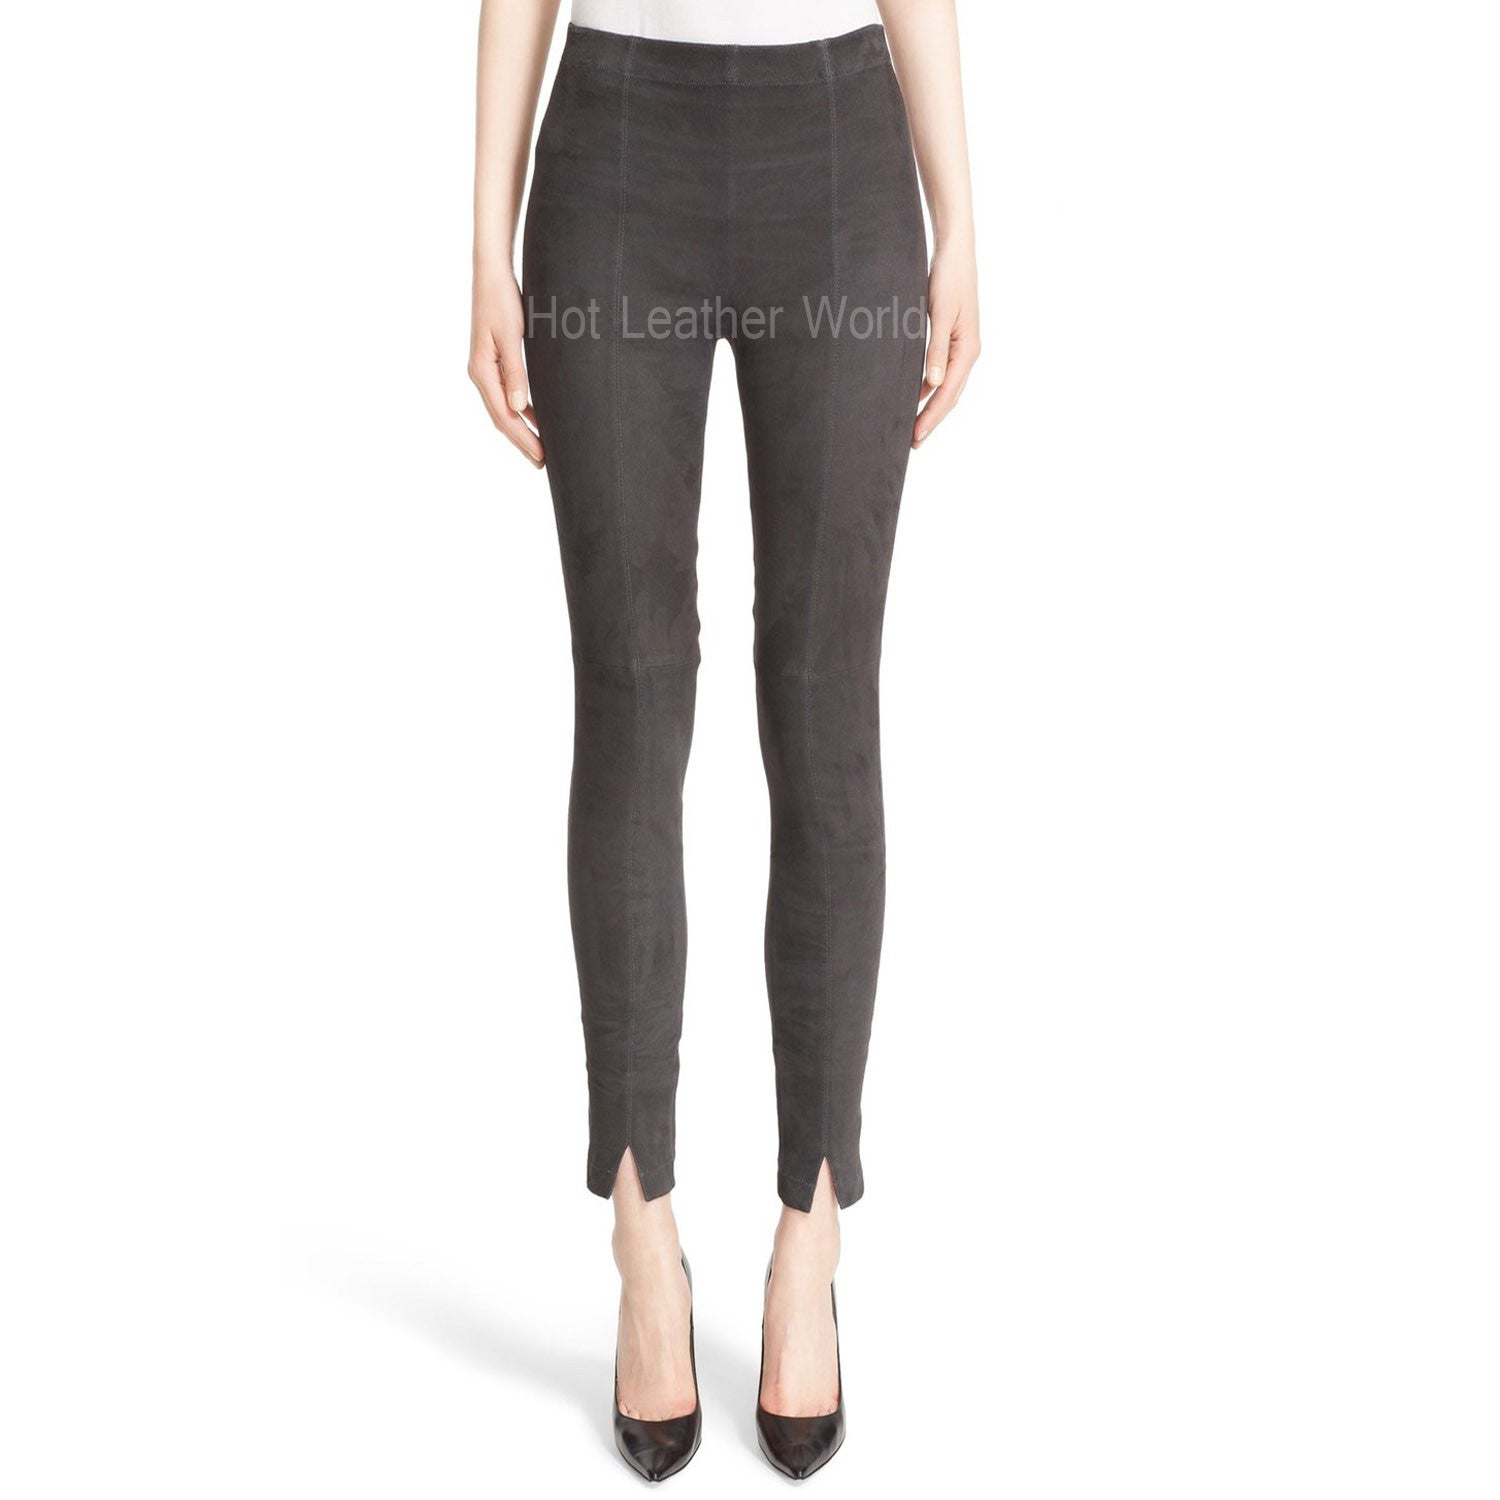 Suede Crop Leggings For Women -  HOTLEATHERWORLD